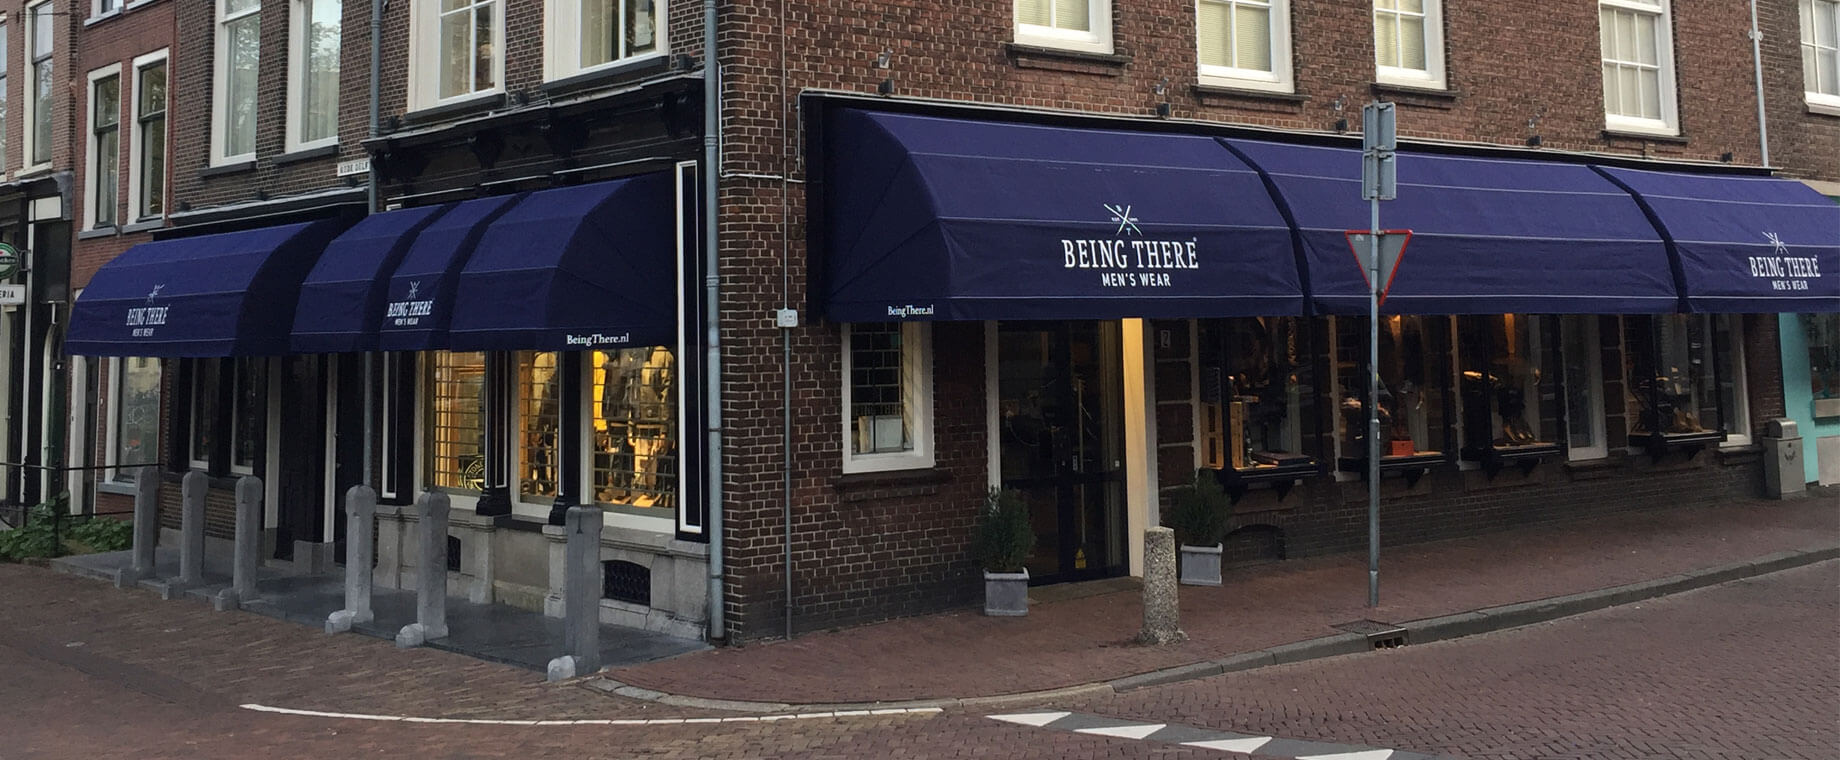 Kledingwinkel Being There in Delft